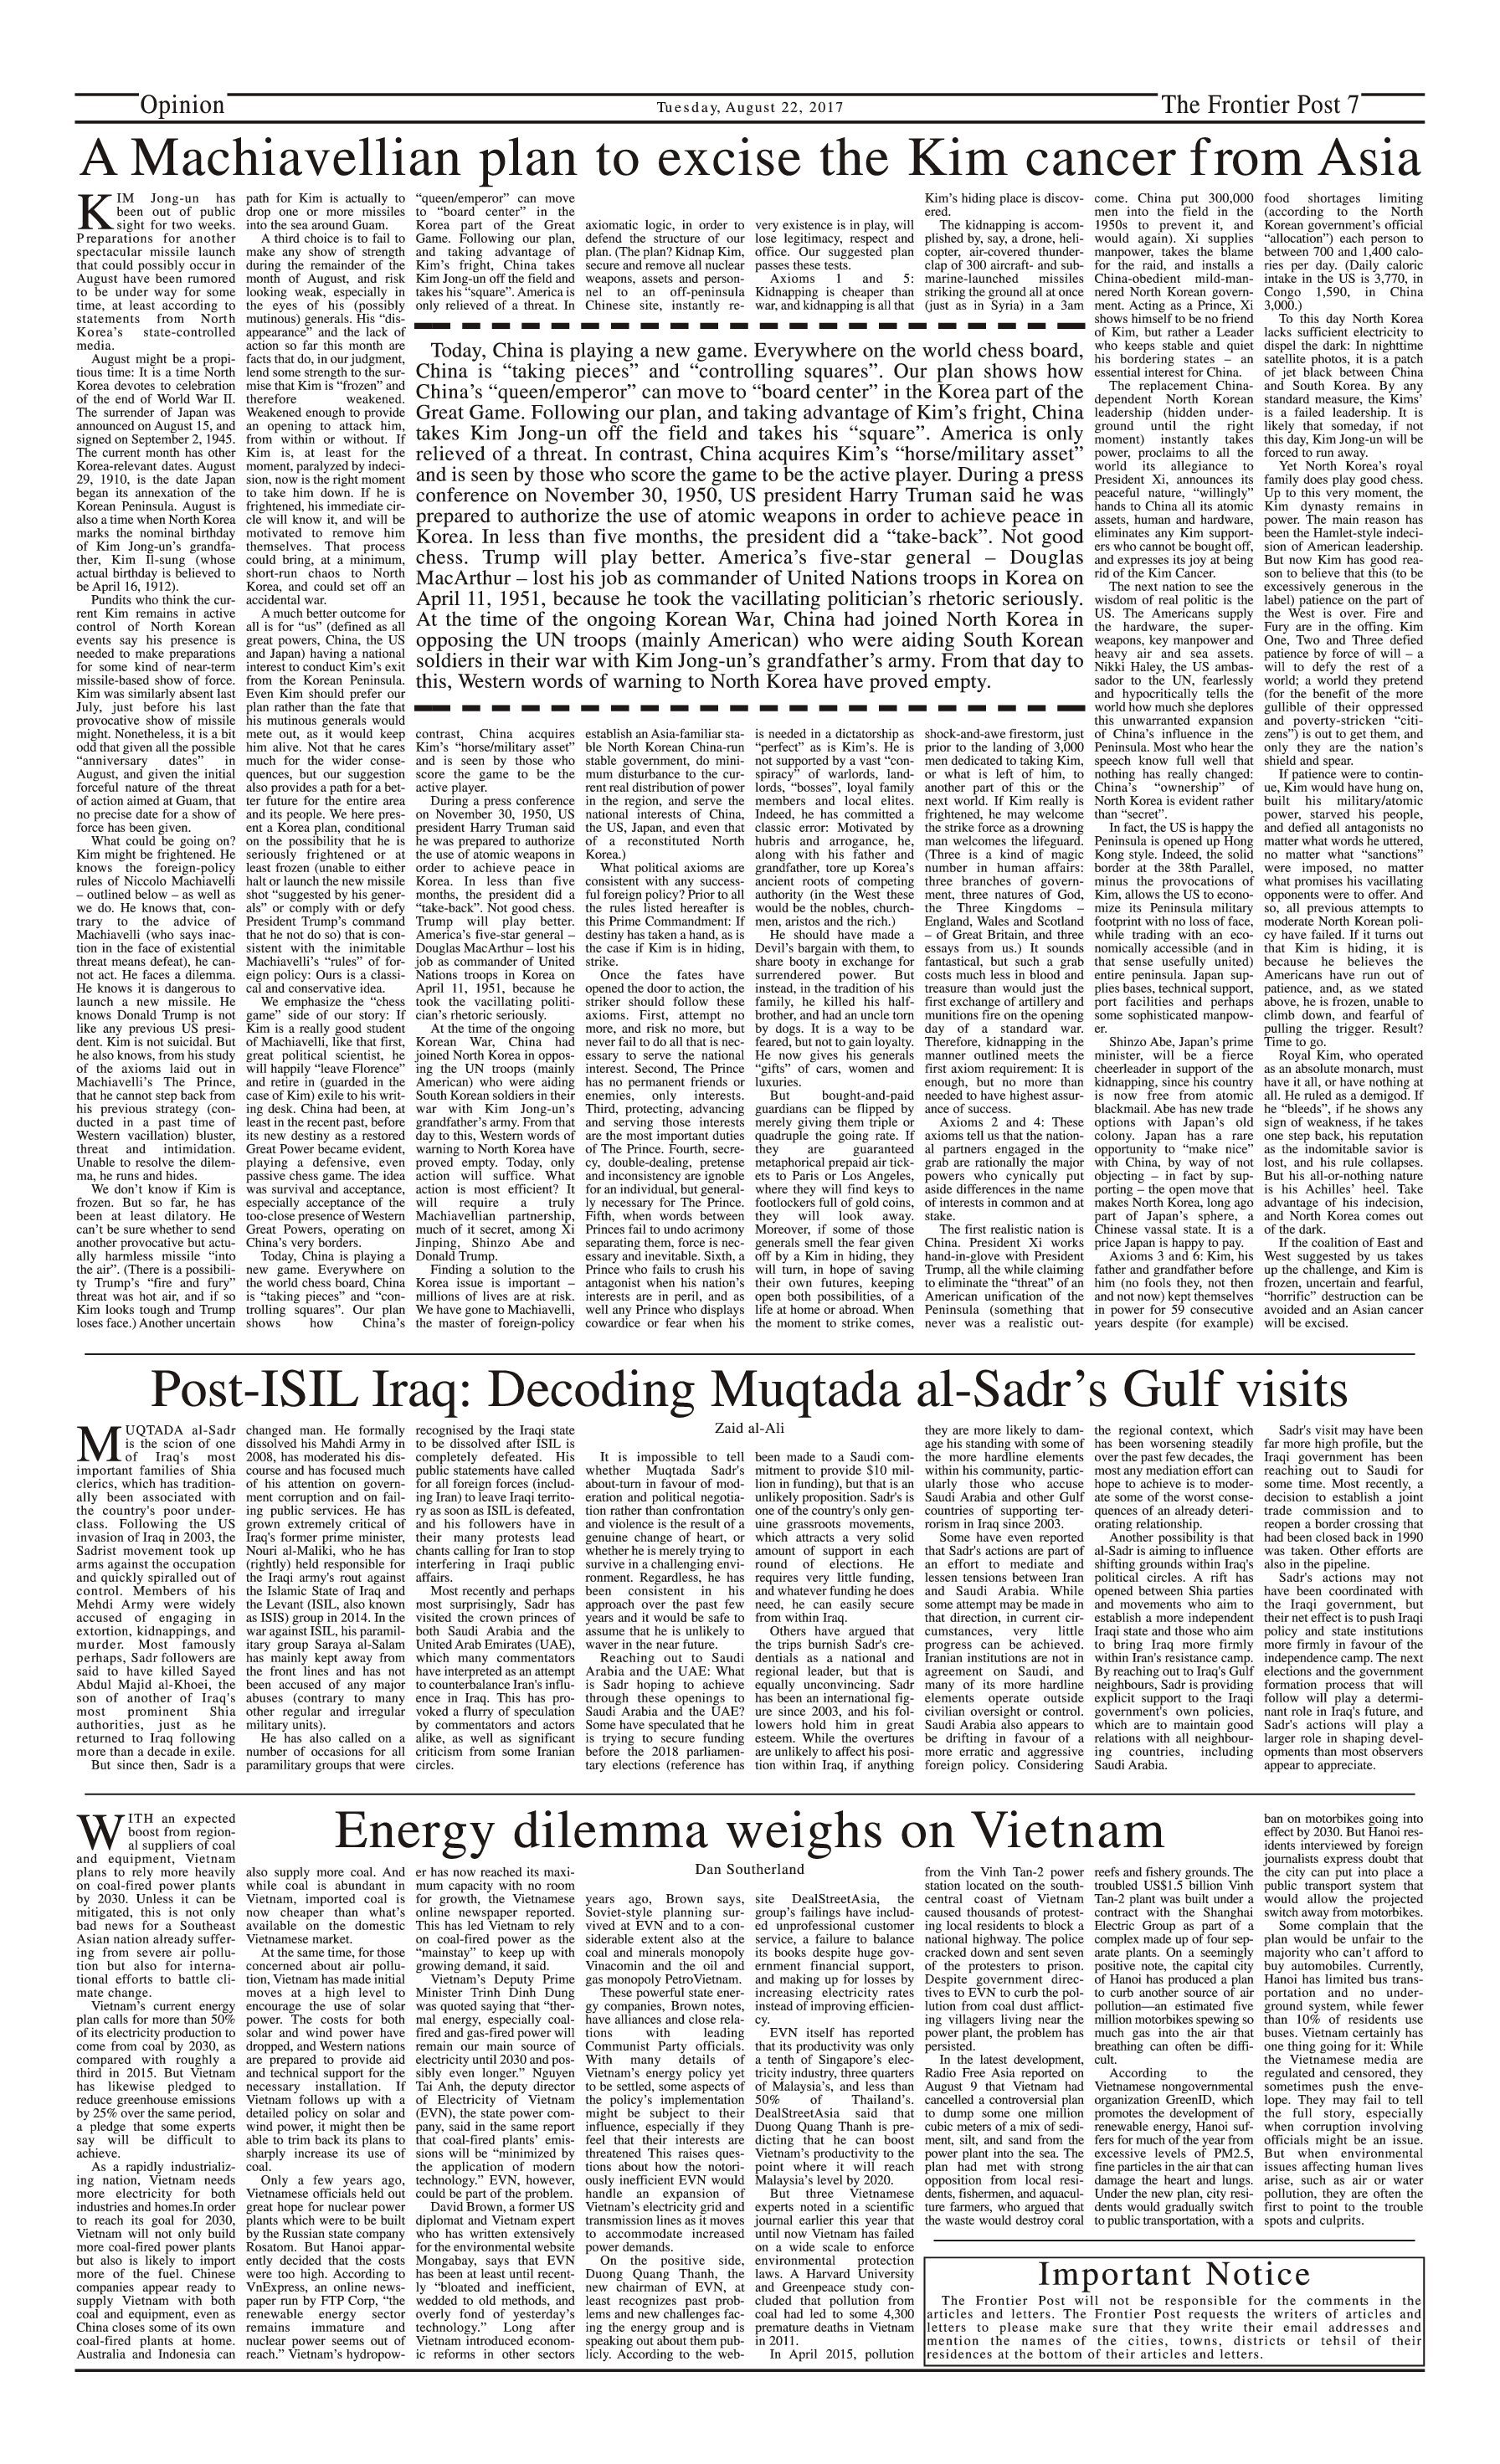 Opinion Page 22